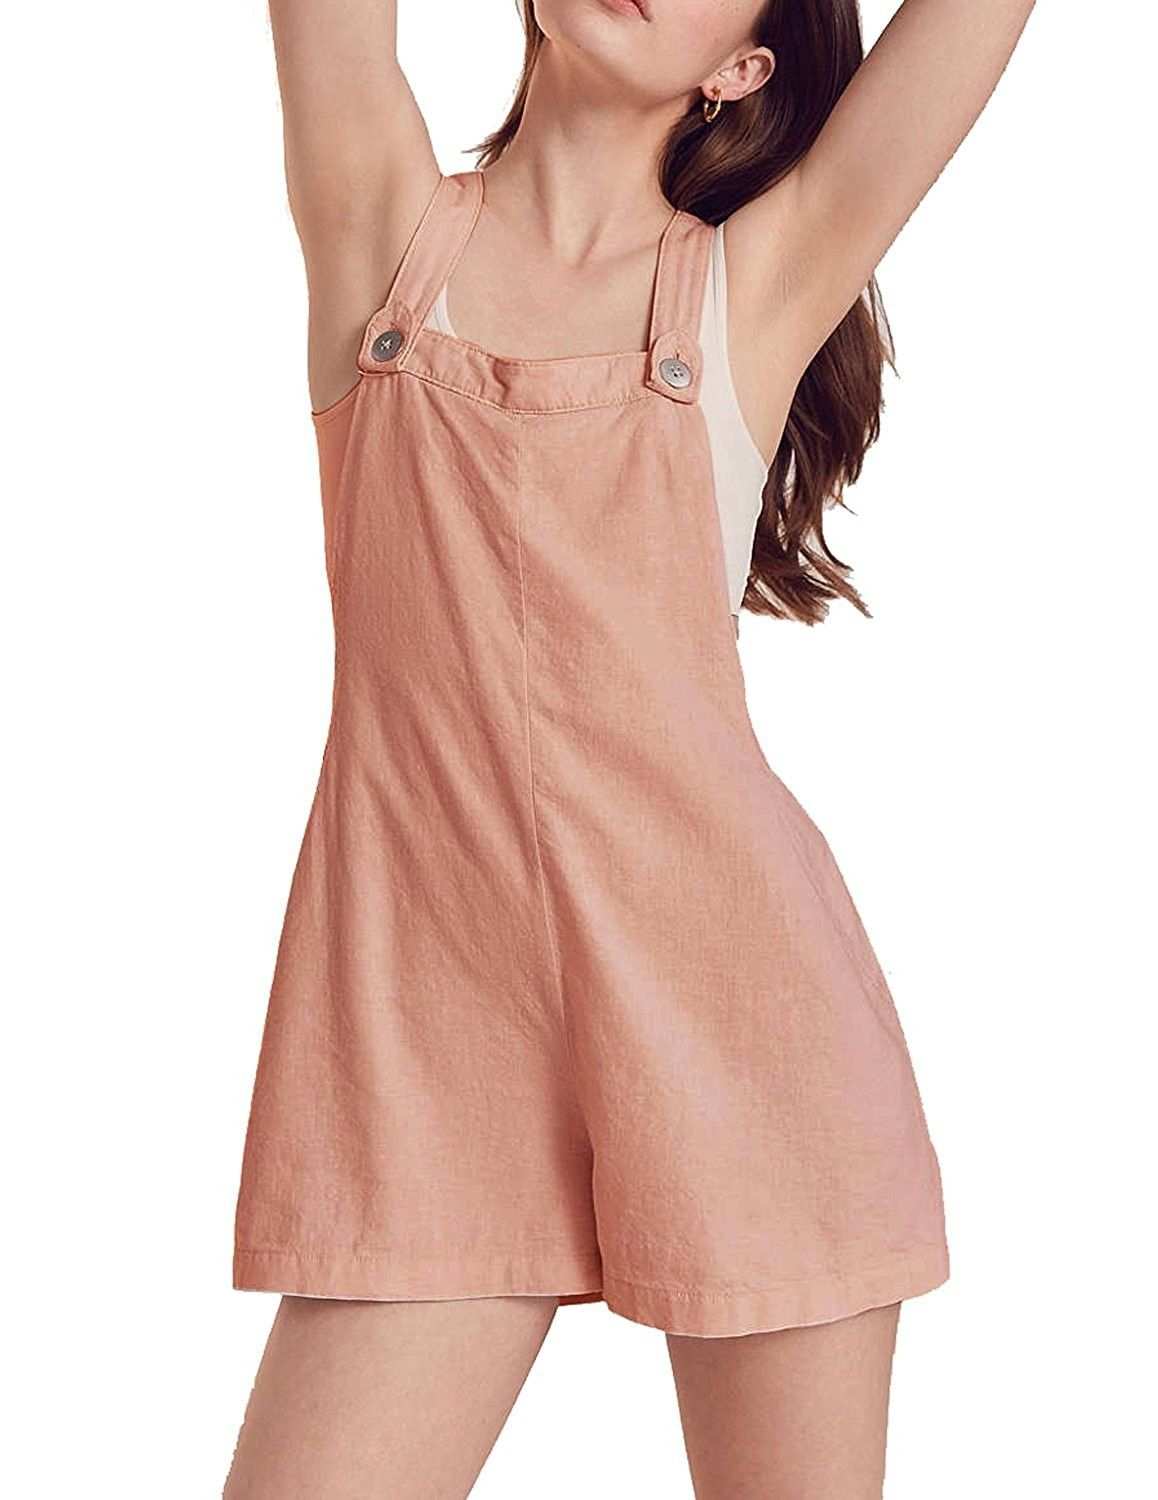 298a8276d1 Womens Bib Shortall Overall Sleeveless Casual Jumpsuit - Pink ...